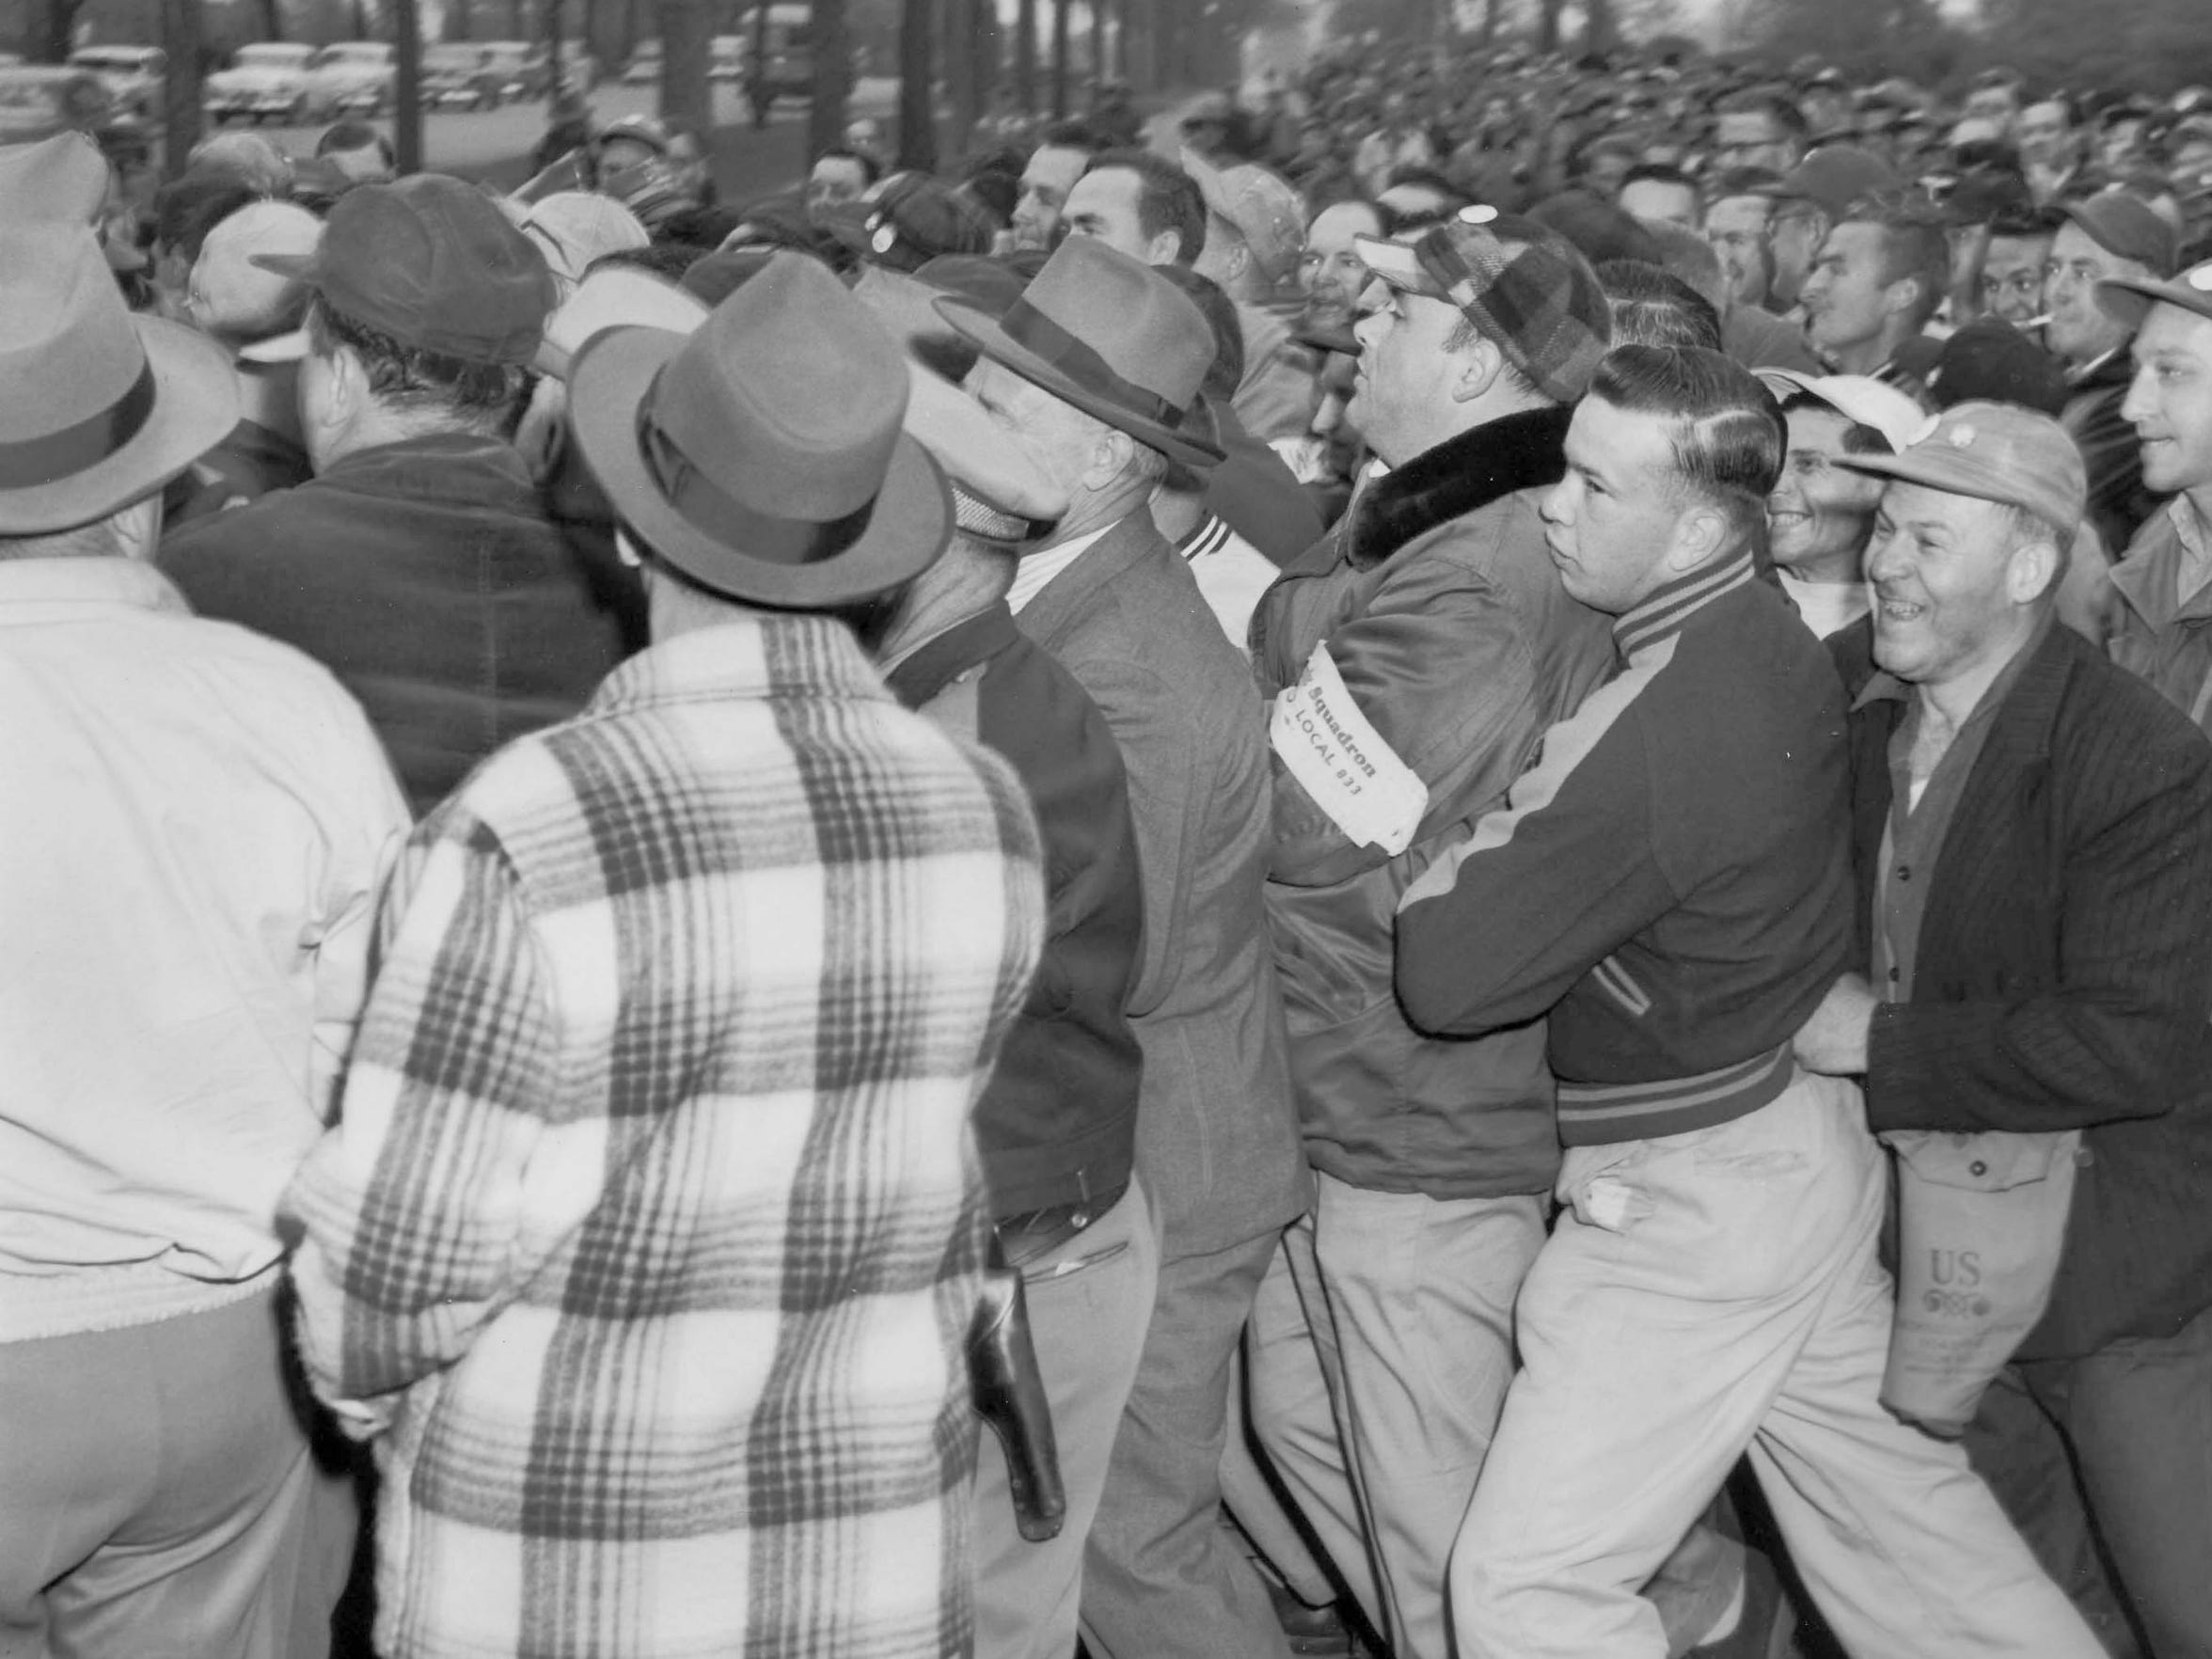 Union members on strike push against the crowd during an attempt by about 40 non-strikers to pass through the picket line in the early hours of May 24, 1954, at the employment office gate in Kohler.